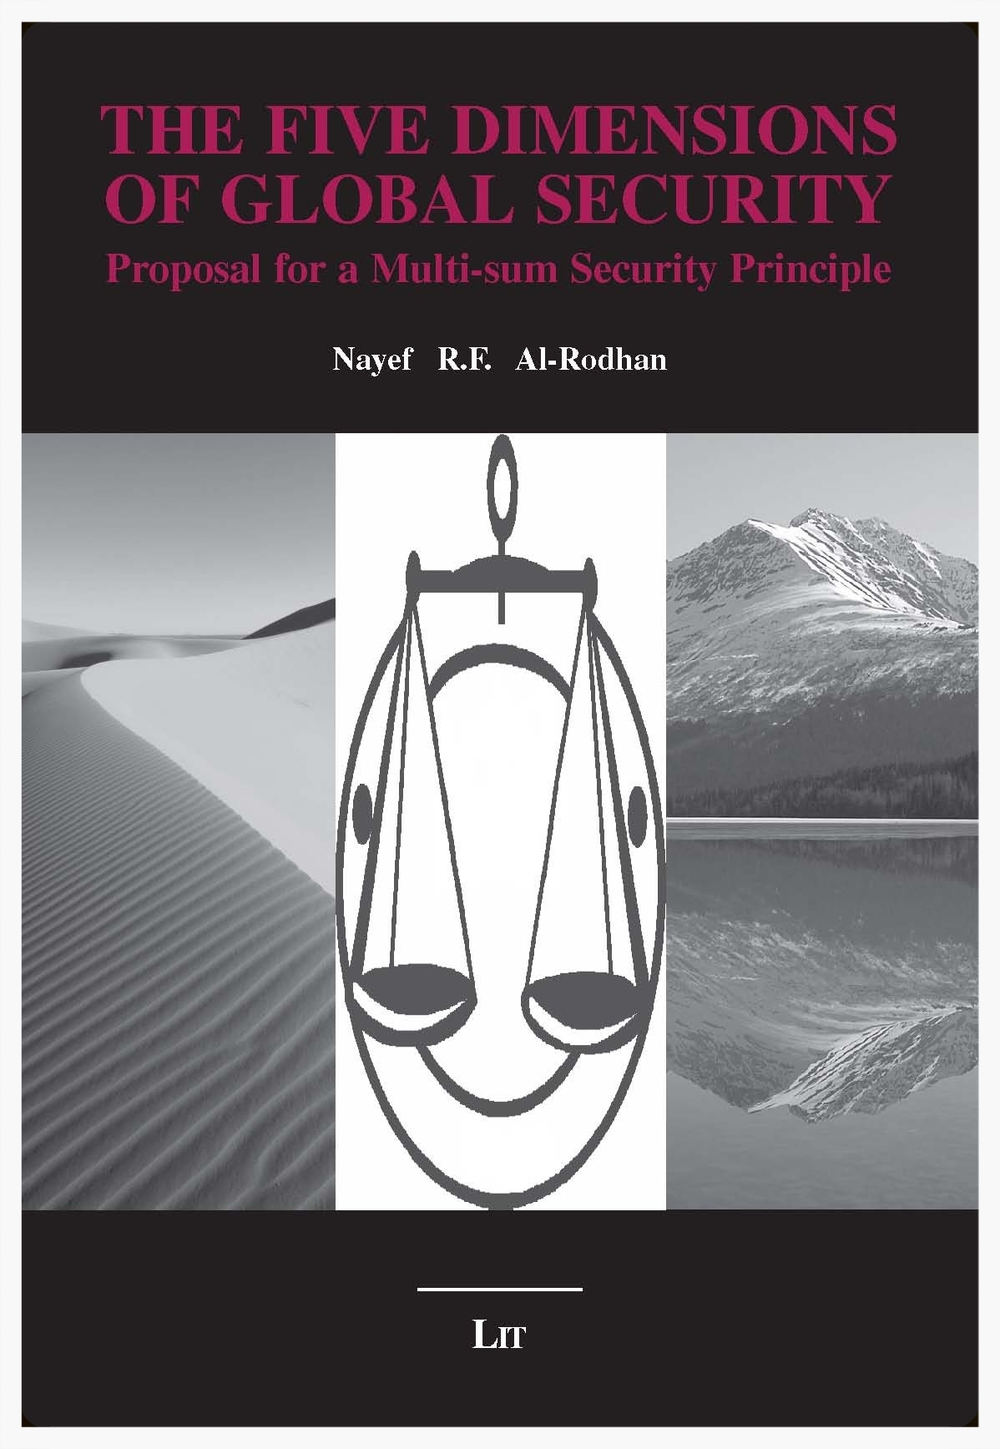 THE FIVE DIMENSIONS OF GLOBAL SECURITY: Proposal for a Multi-sum Security Principle